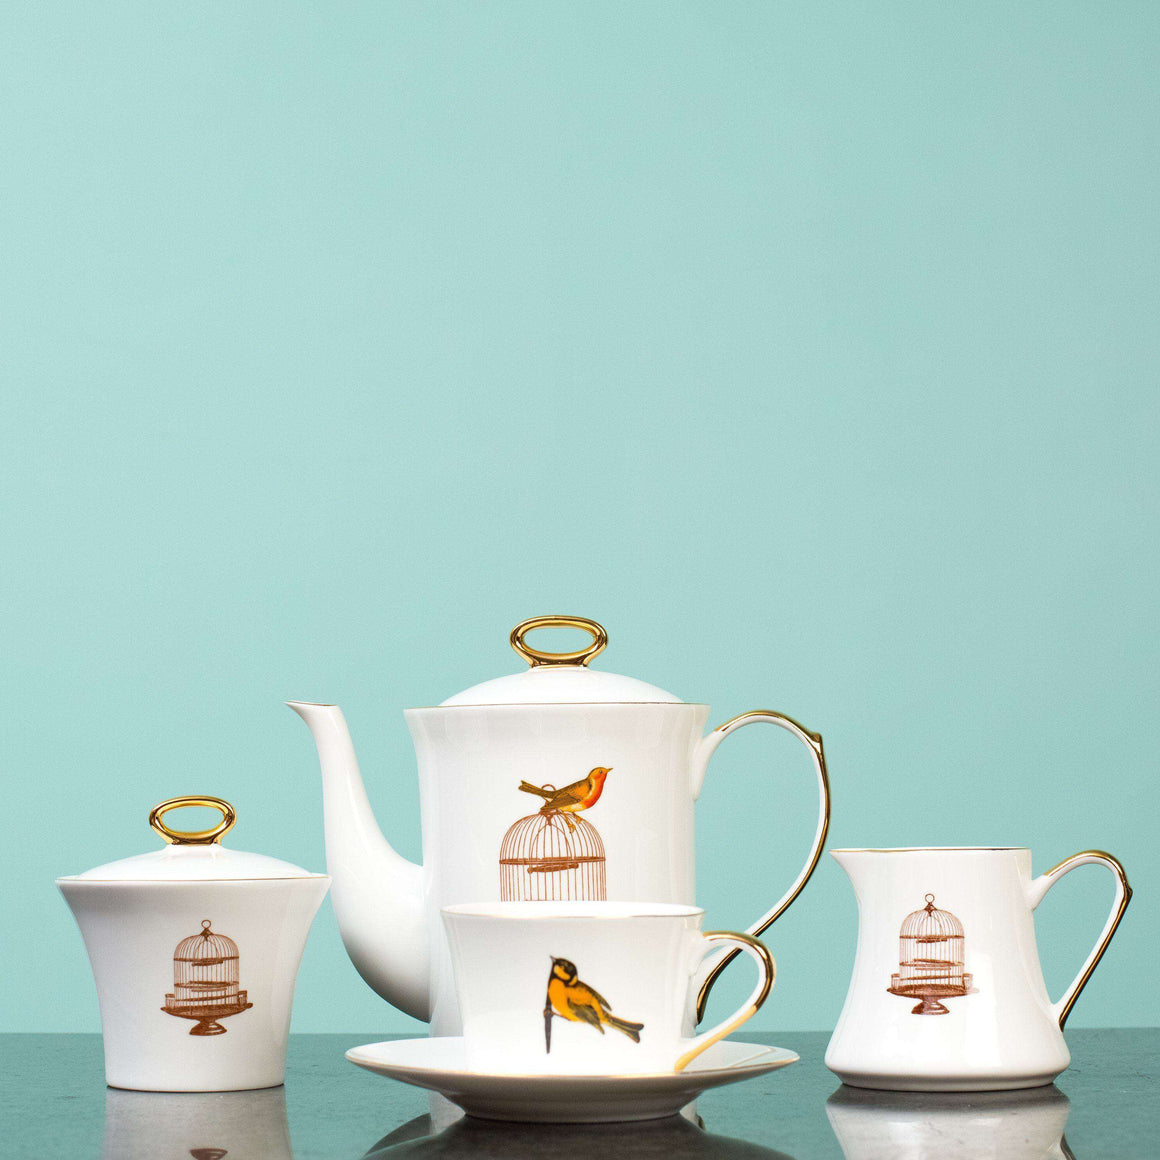 Freedom - 11 Piece Tea Set